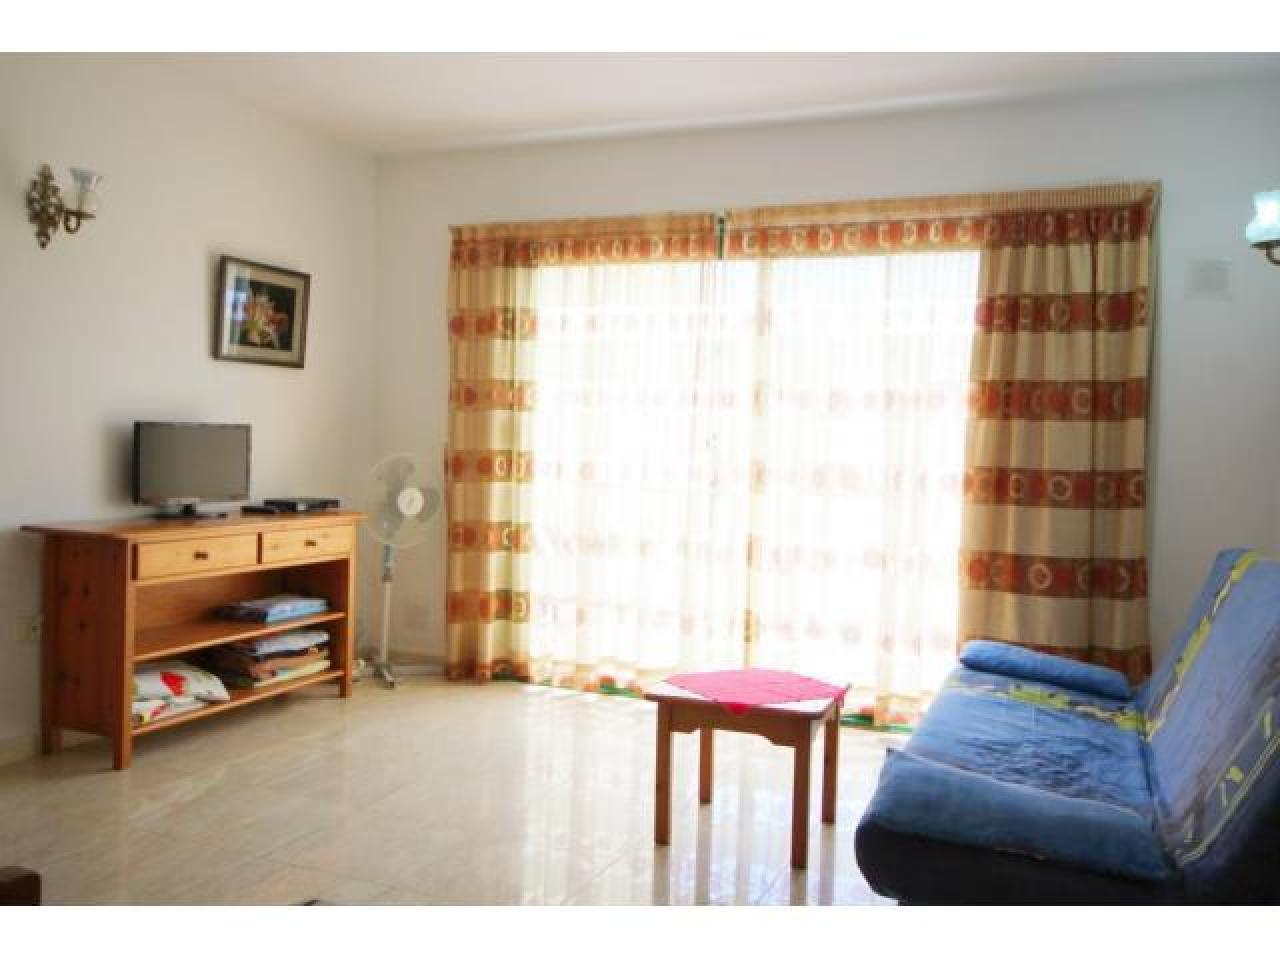 Apartment in Tenerife for sale » #373 - 2